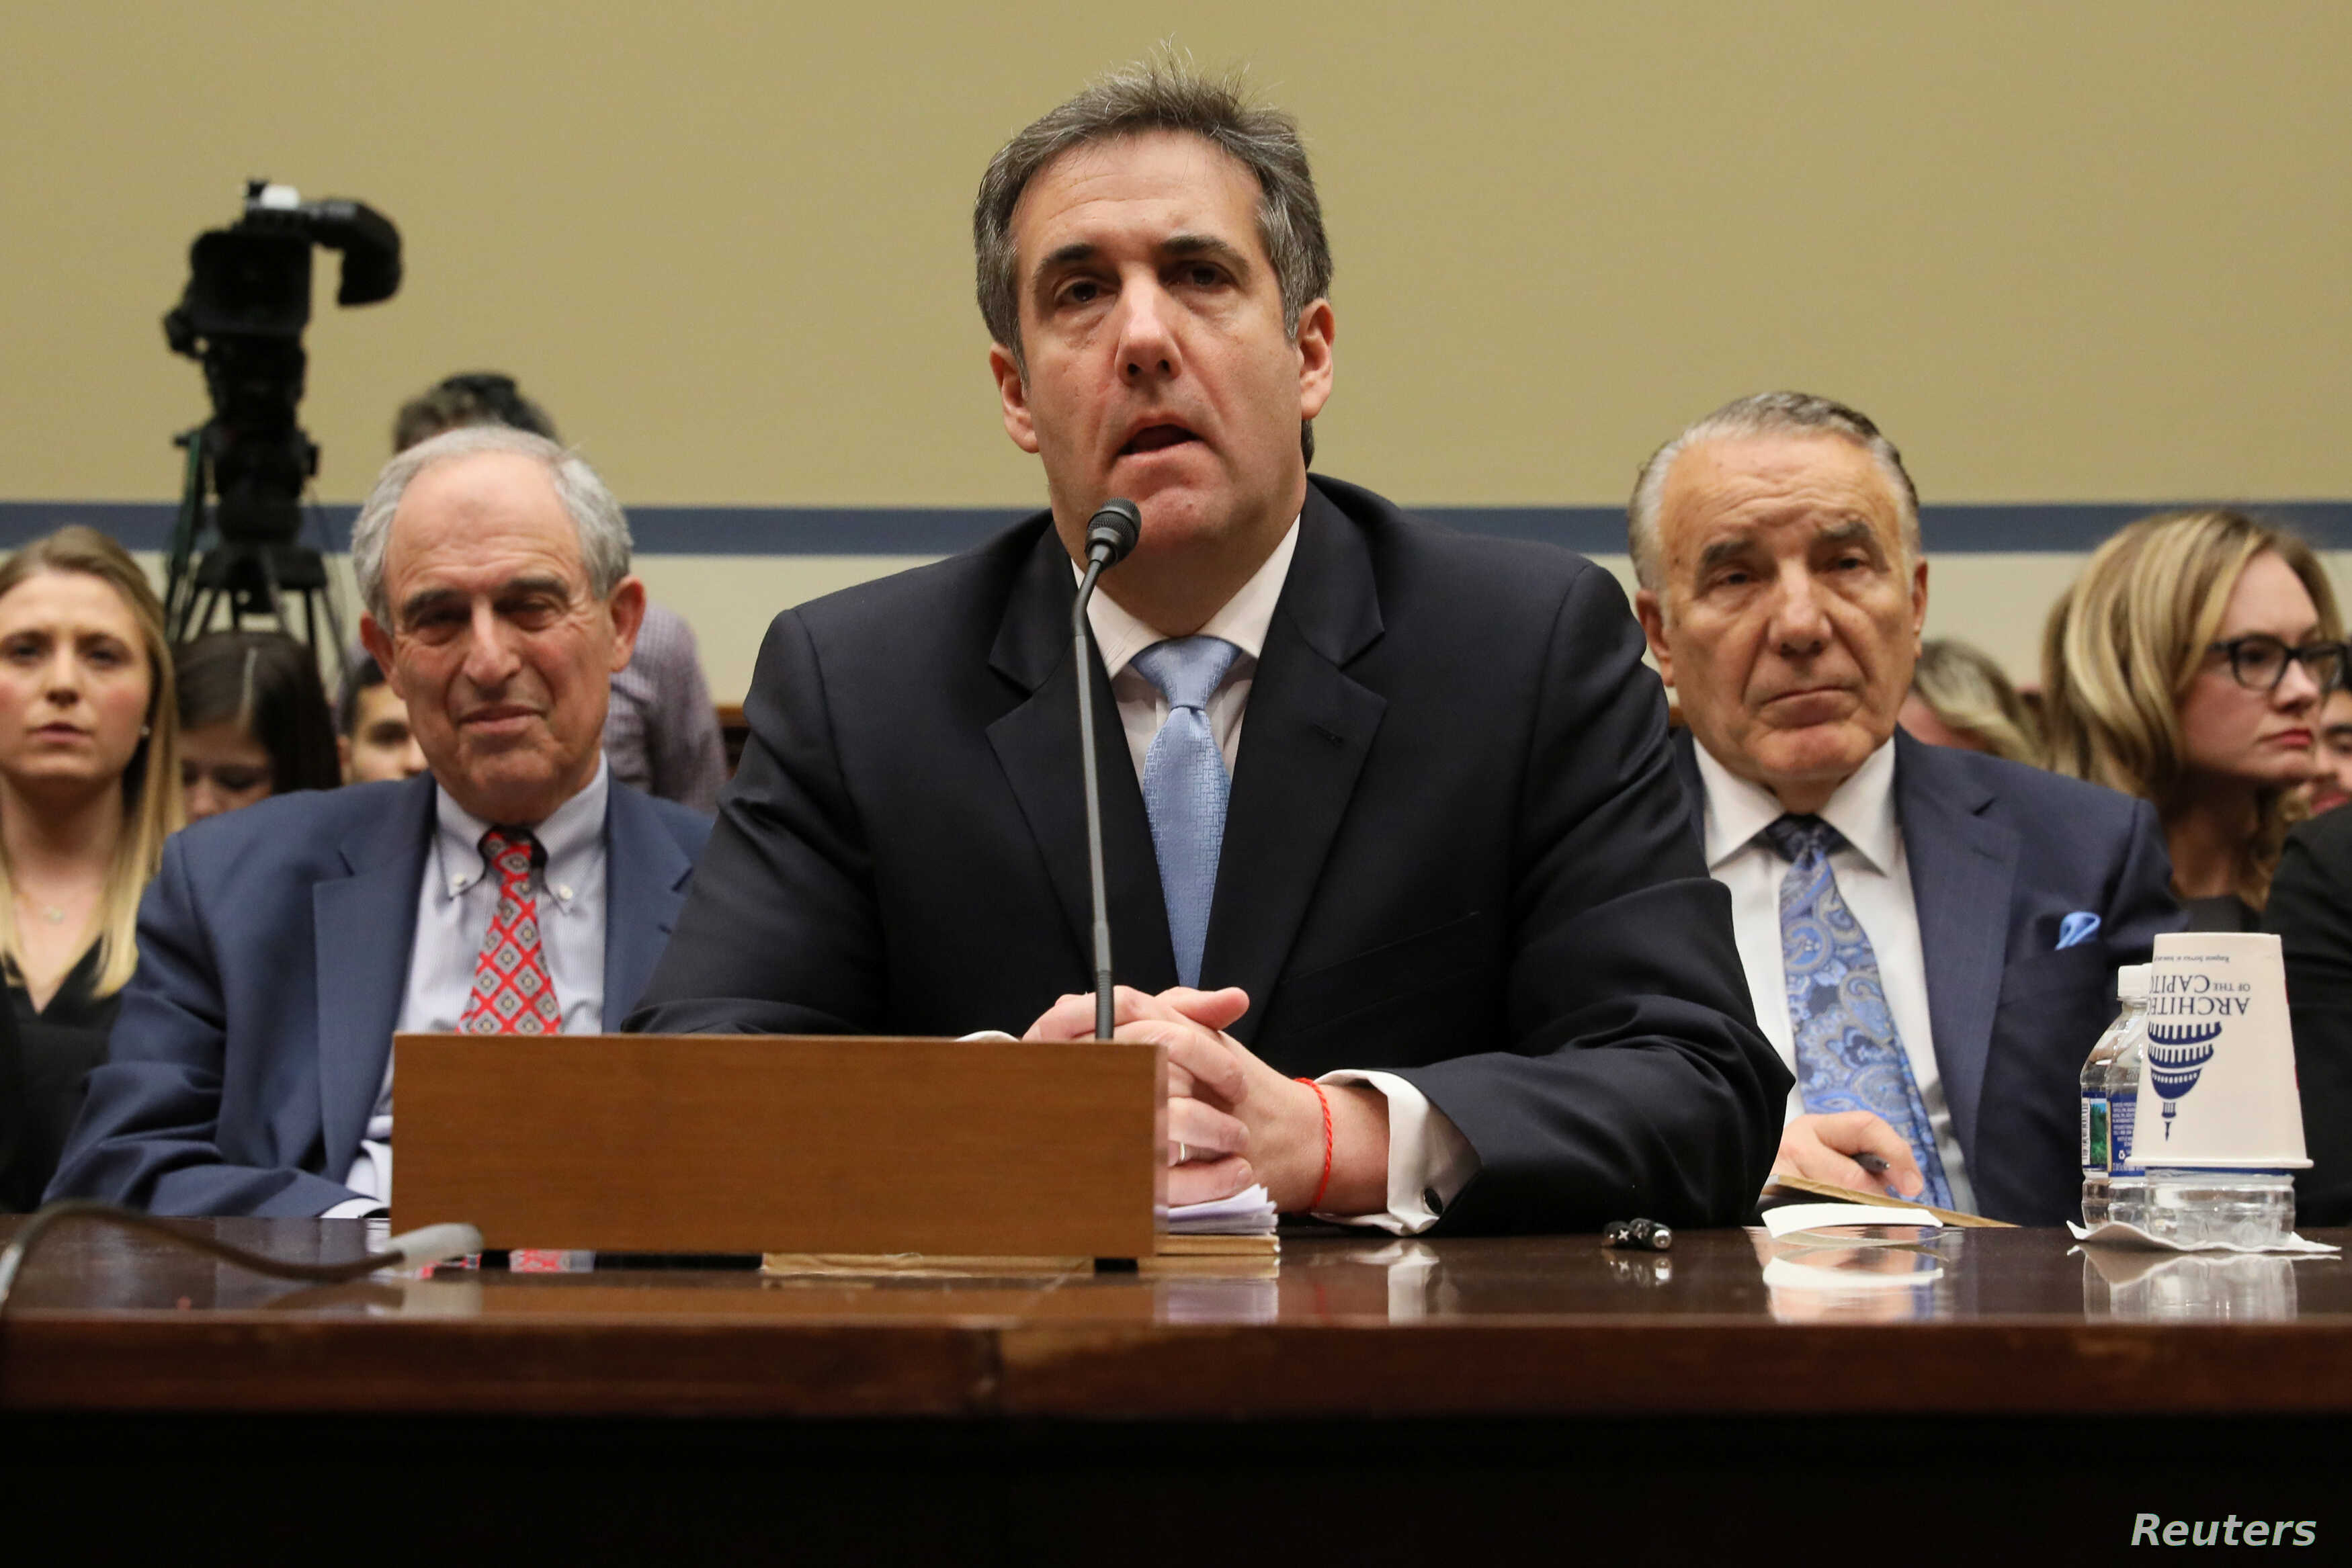 Michael Cohen, the former personal attorney of U.S. President Donald Trump, is flanked by his attorneys Lanny Davis (L) and Mike Monico (R) as he testifies before a House Committee on Oversight and Reform hearing on Capitol Hill in Washington, Feb. 2...